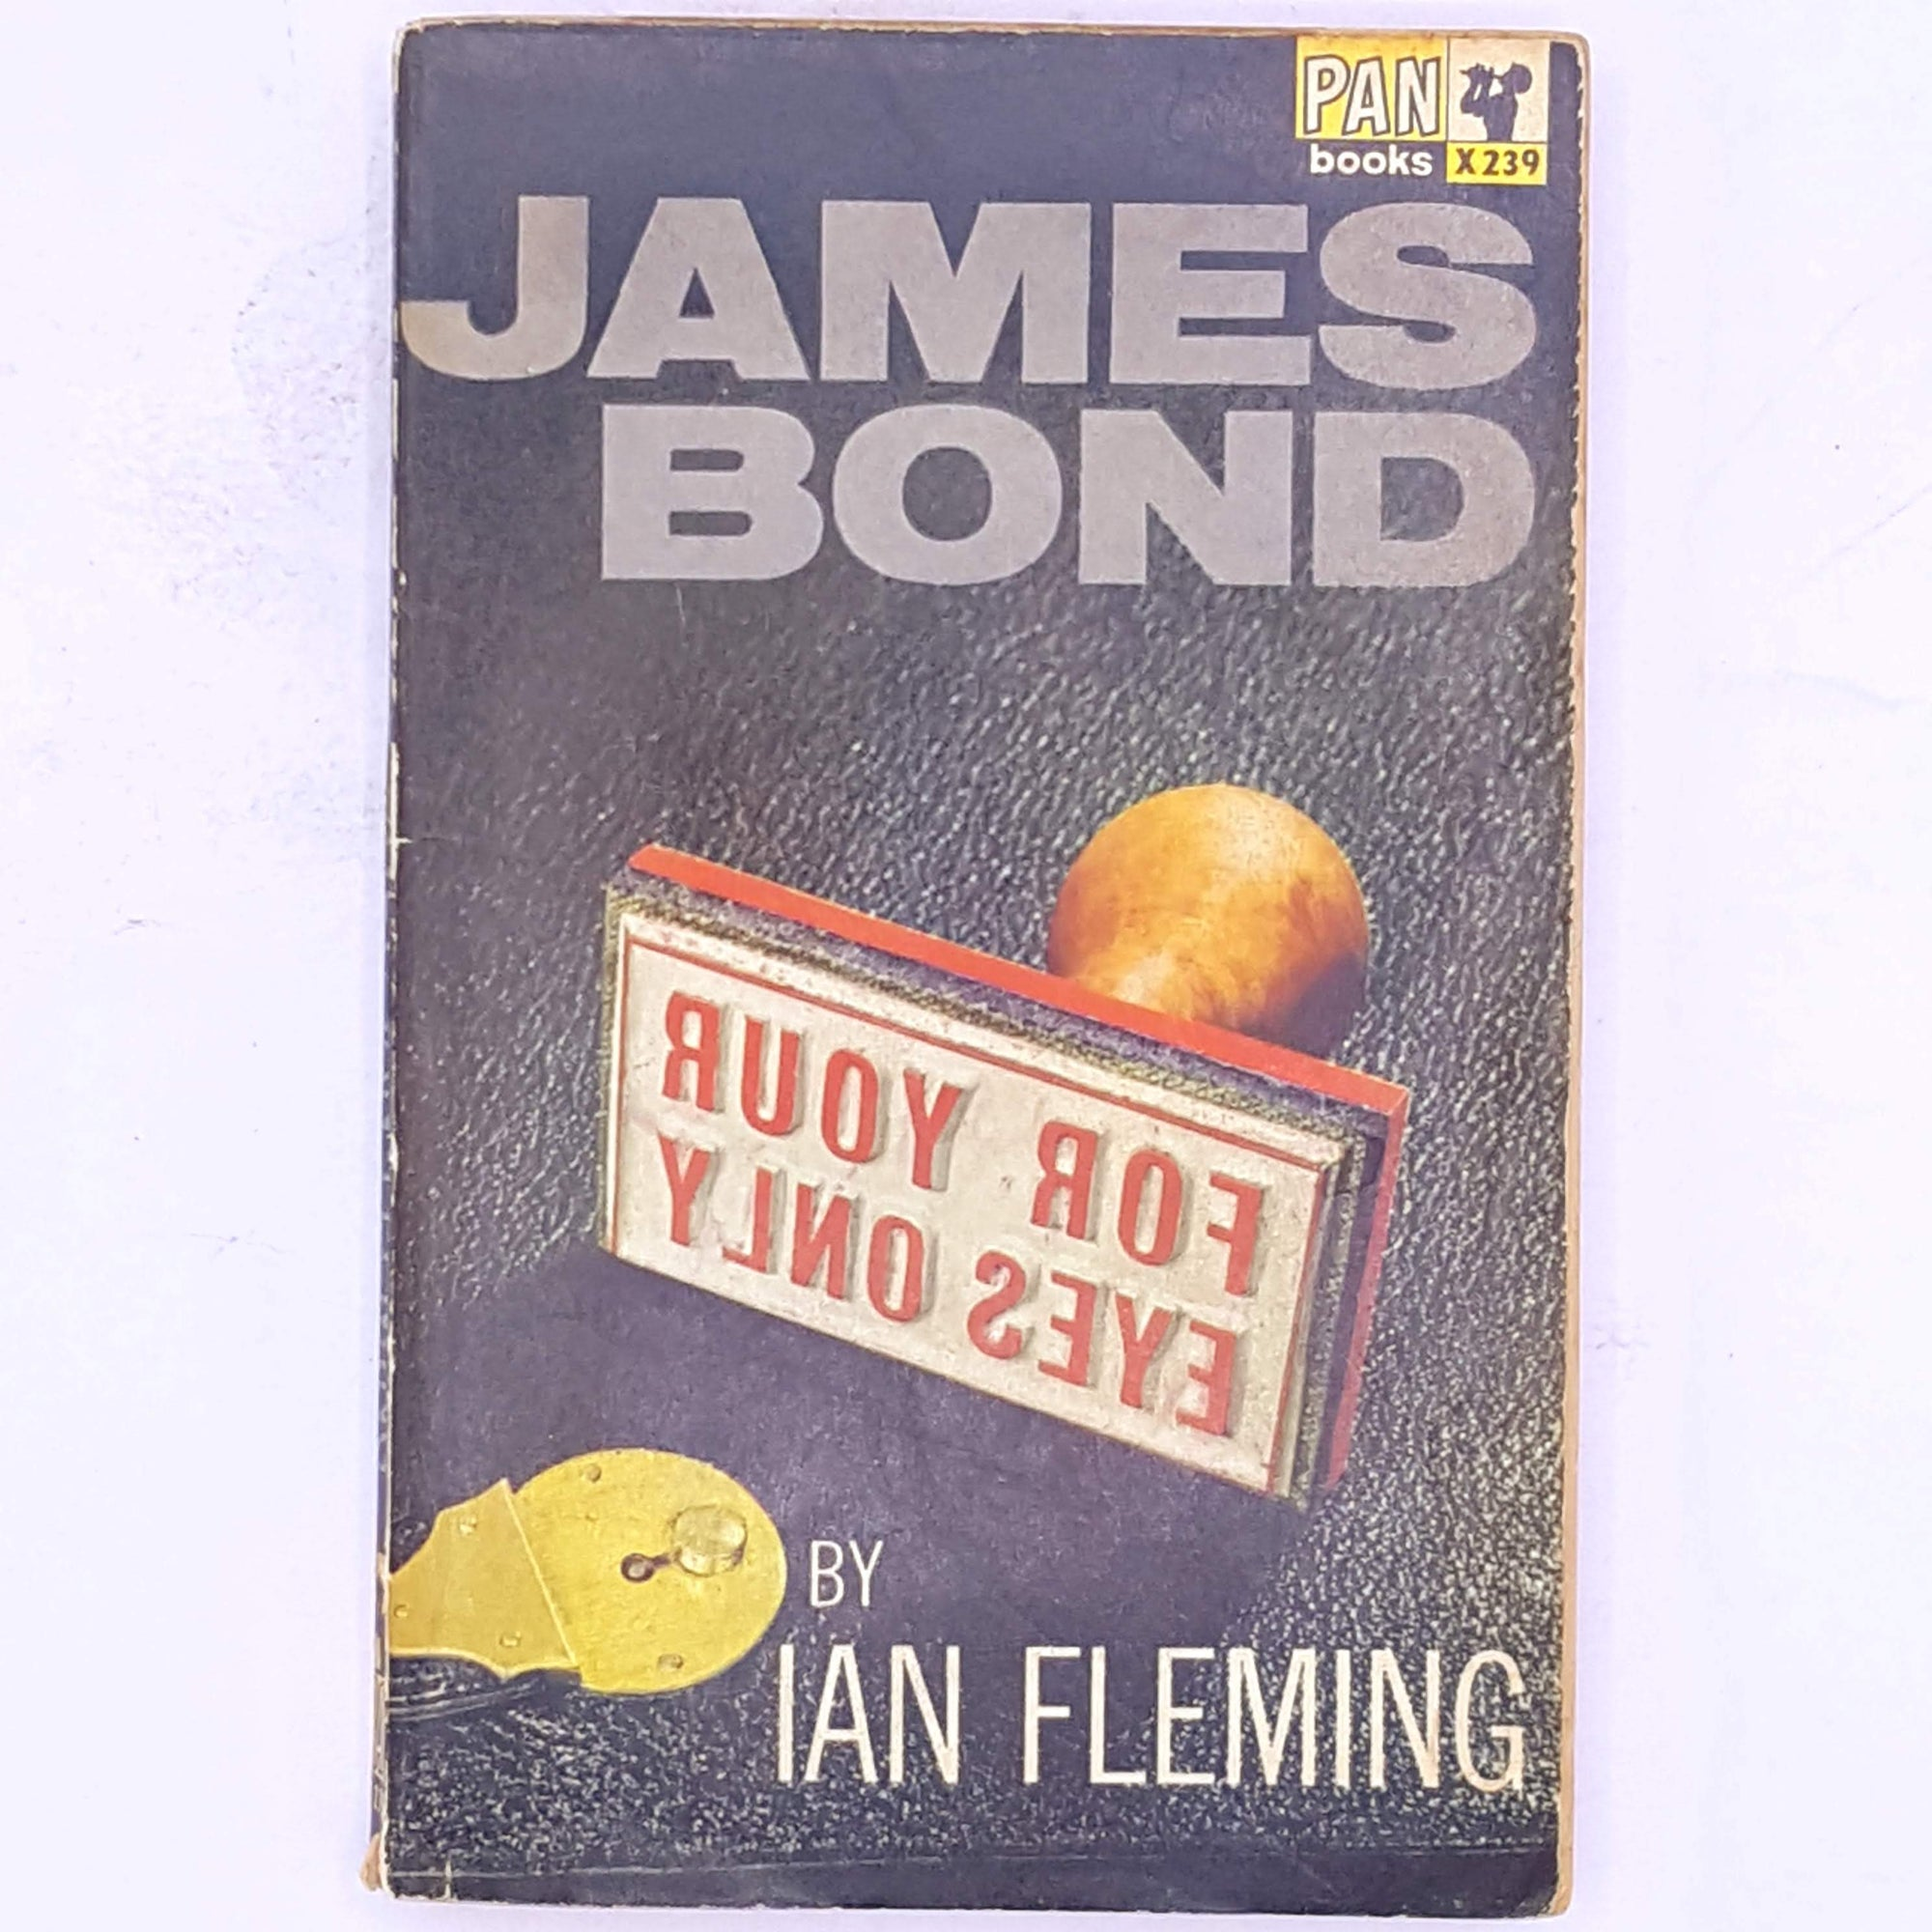 007 - For Your Eyes Only by Ian Fleming